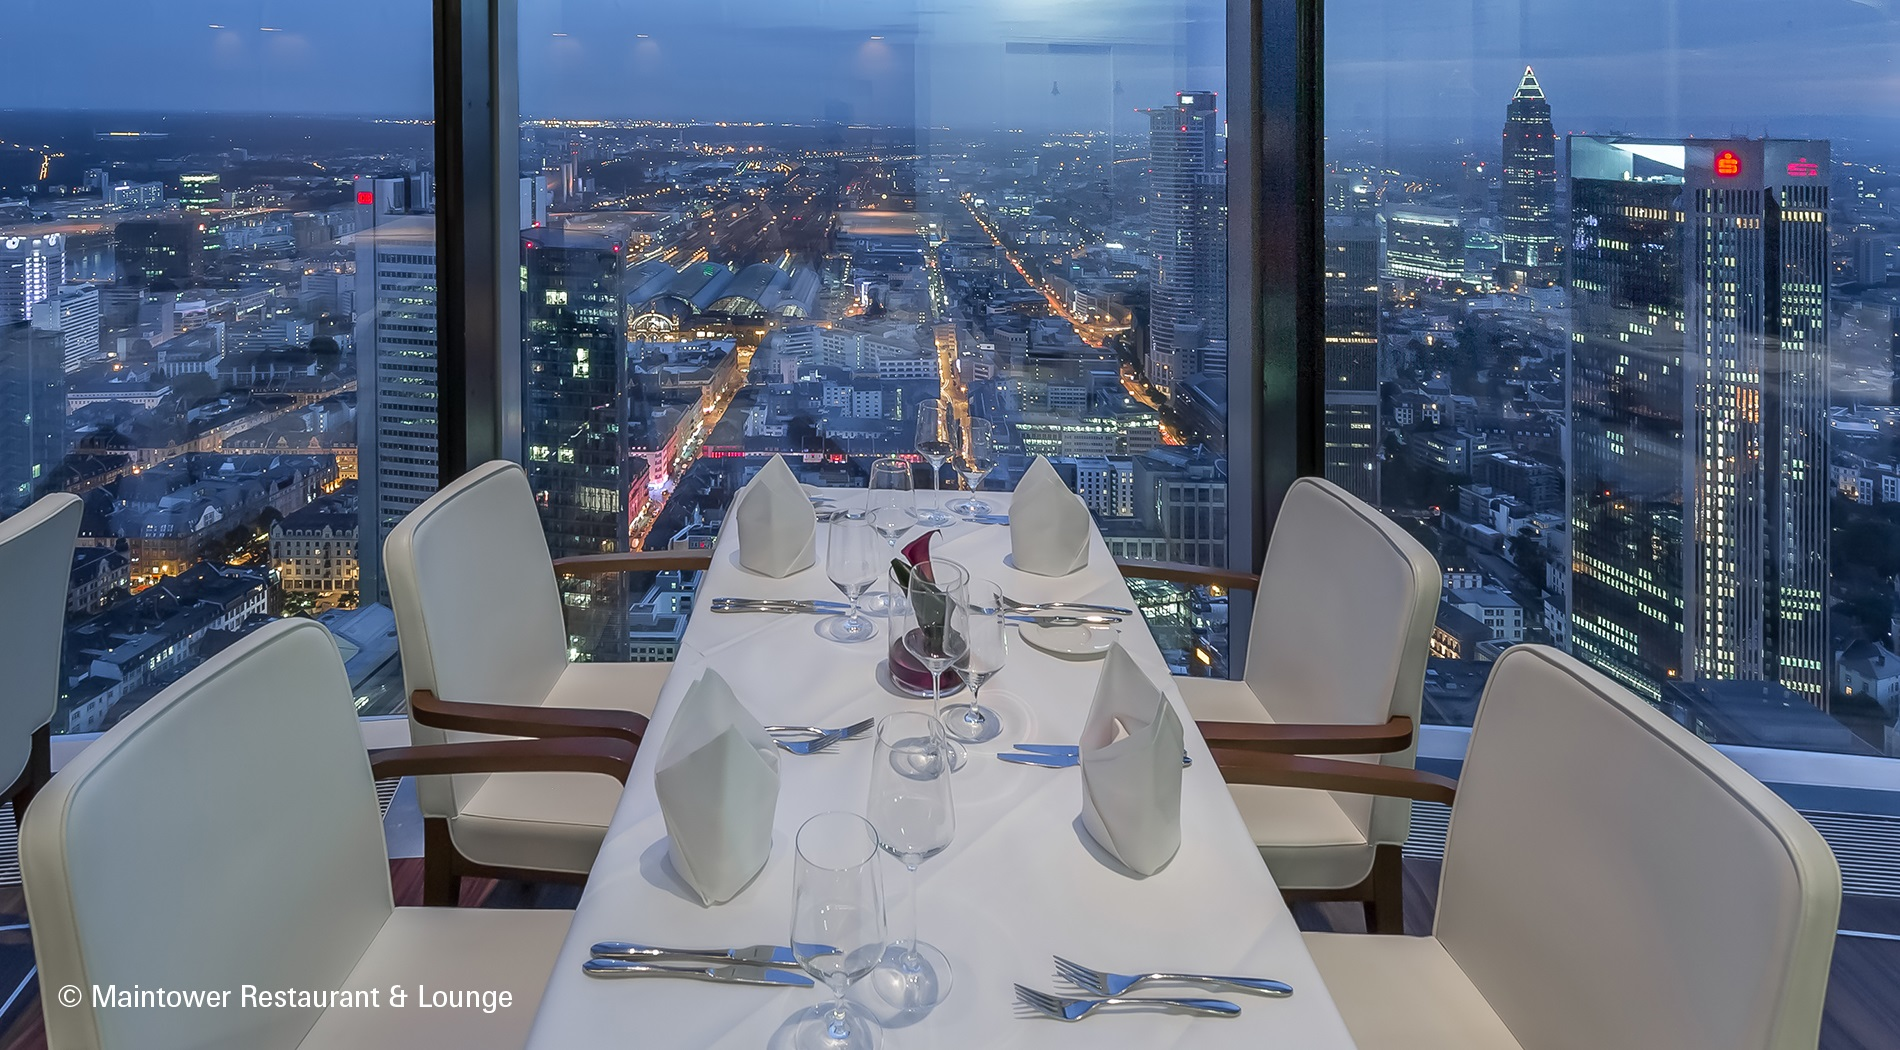 Maintower Restaurant & Lounge in Frankfurt